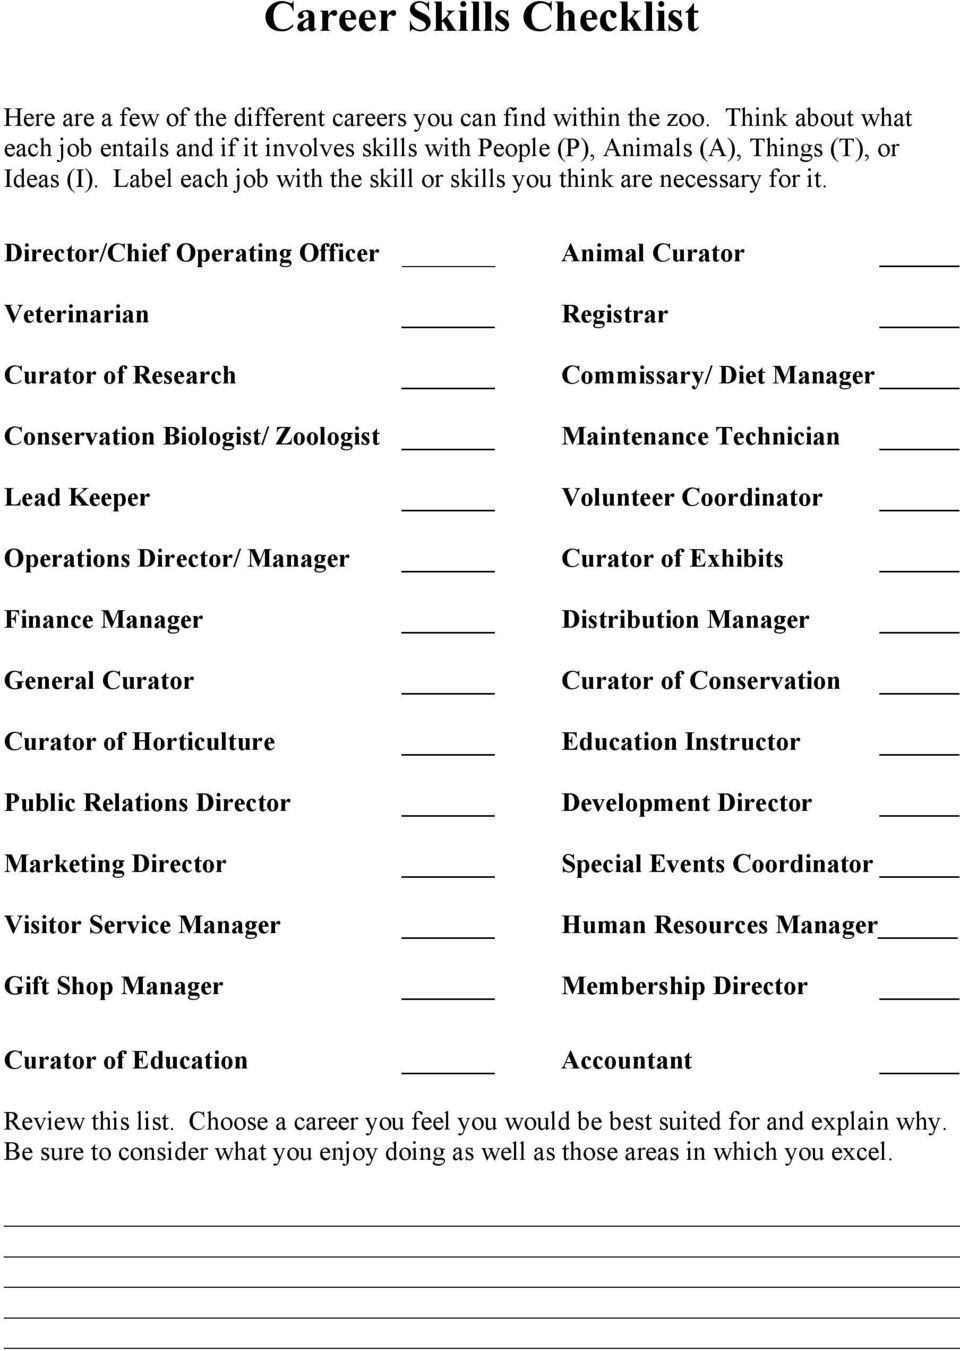 Director/Chief Operating Officer Animal Curator Veterinarian Registrar Curator of Research Commissary/ Diet Manager Conservation Biologist/ Zoologist Maintenance Technician Lead Keeper Volunteer